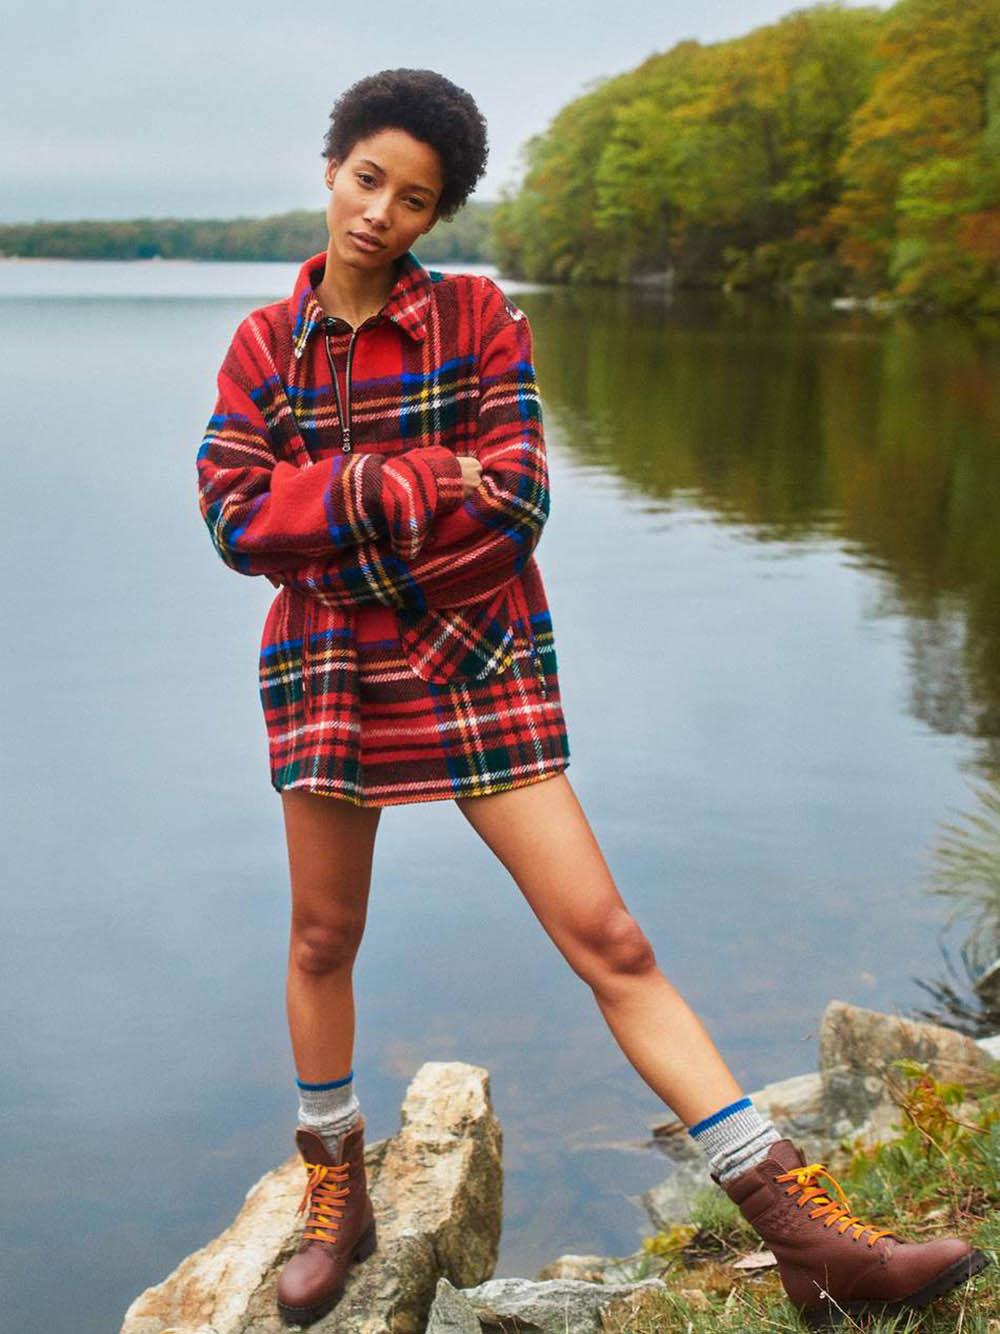 Lineisy Montero covers Porter Edit July 5th, 2019 by Nick Riley Bentham